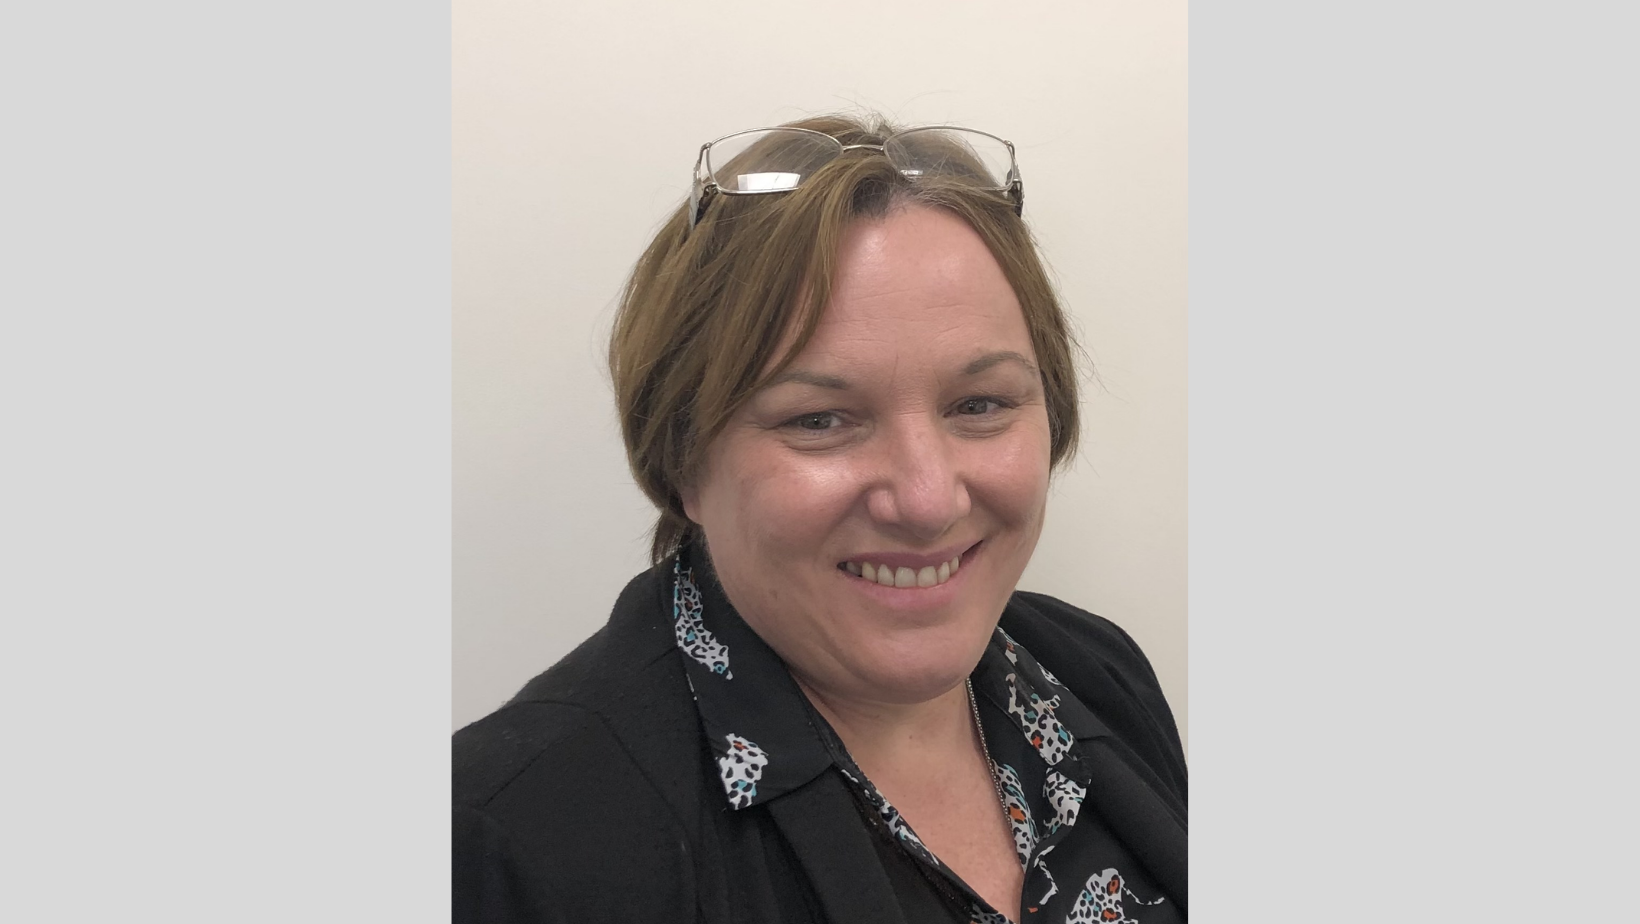 New Head of Supported Living Services for Radis